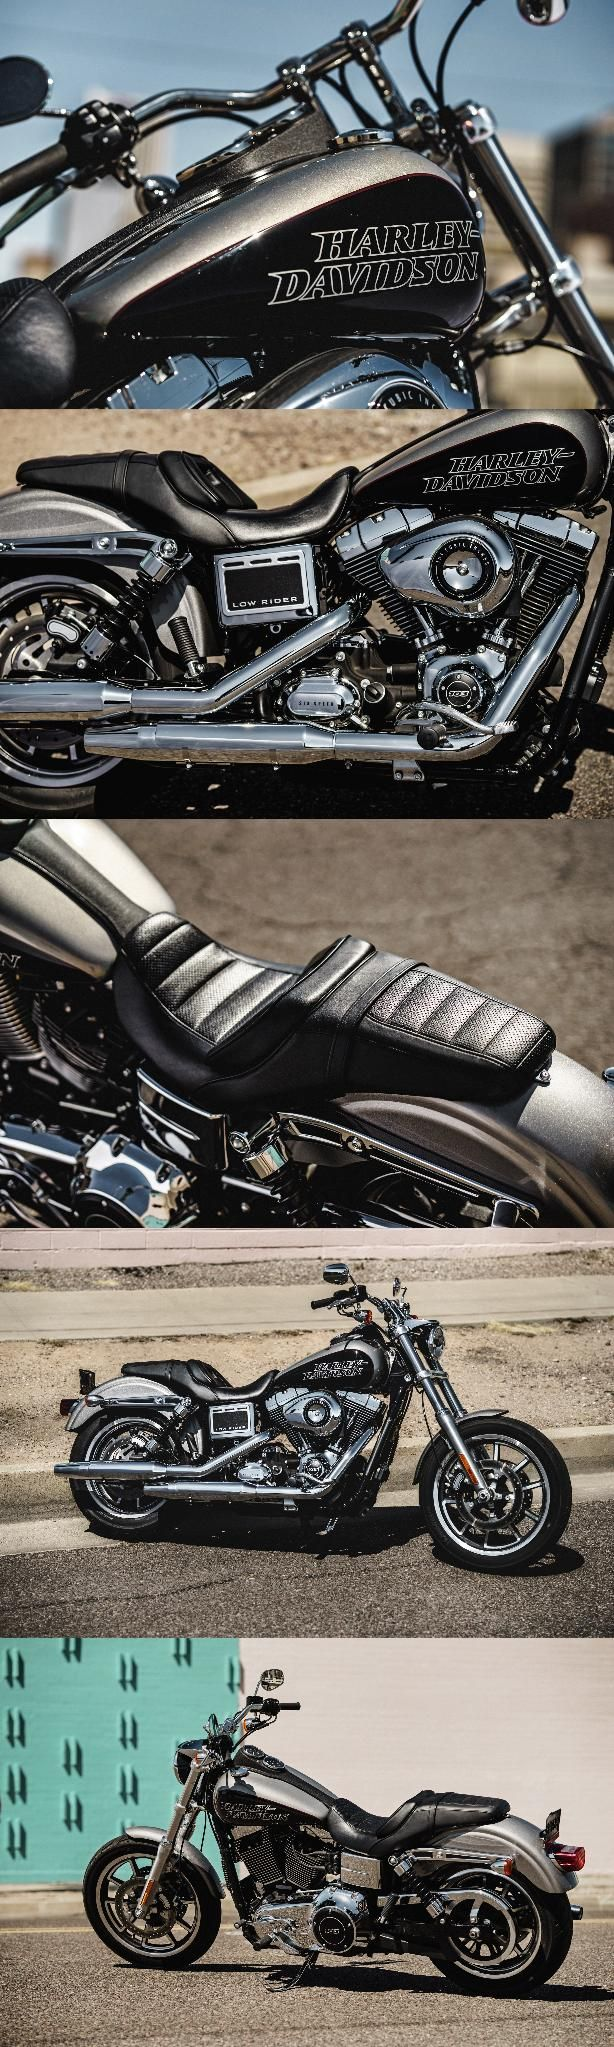 The Harley-Davidson Low Rider motorcycle is back with a vengeance. Easy-riding street custom style hits a new low. And a new high.